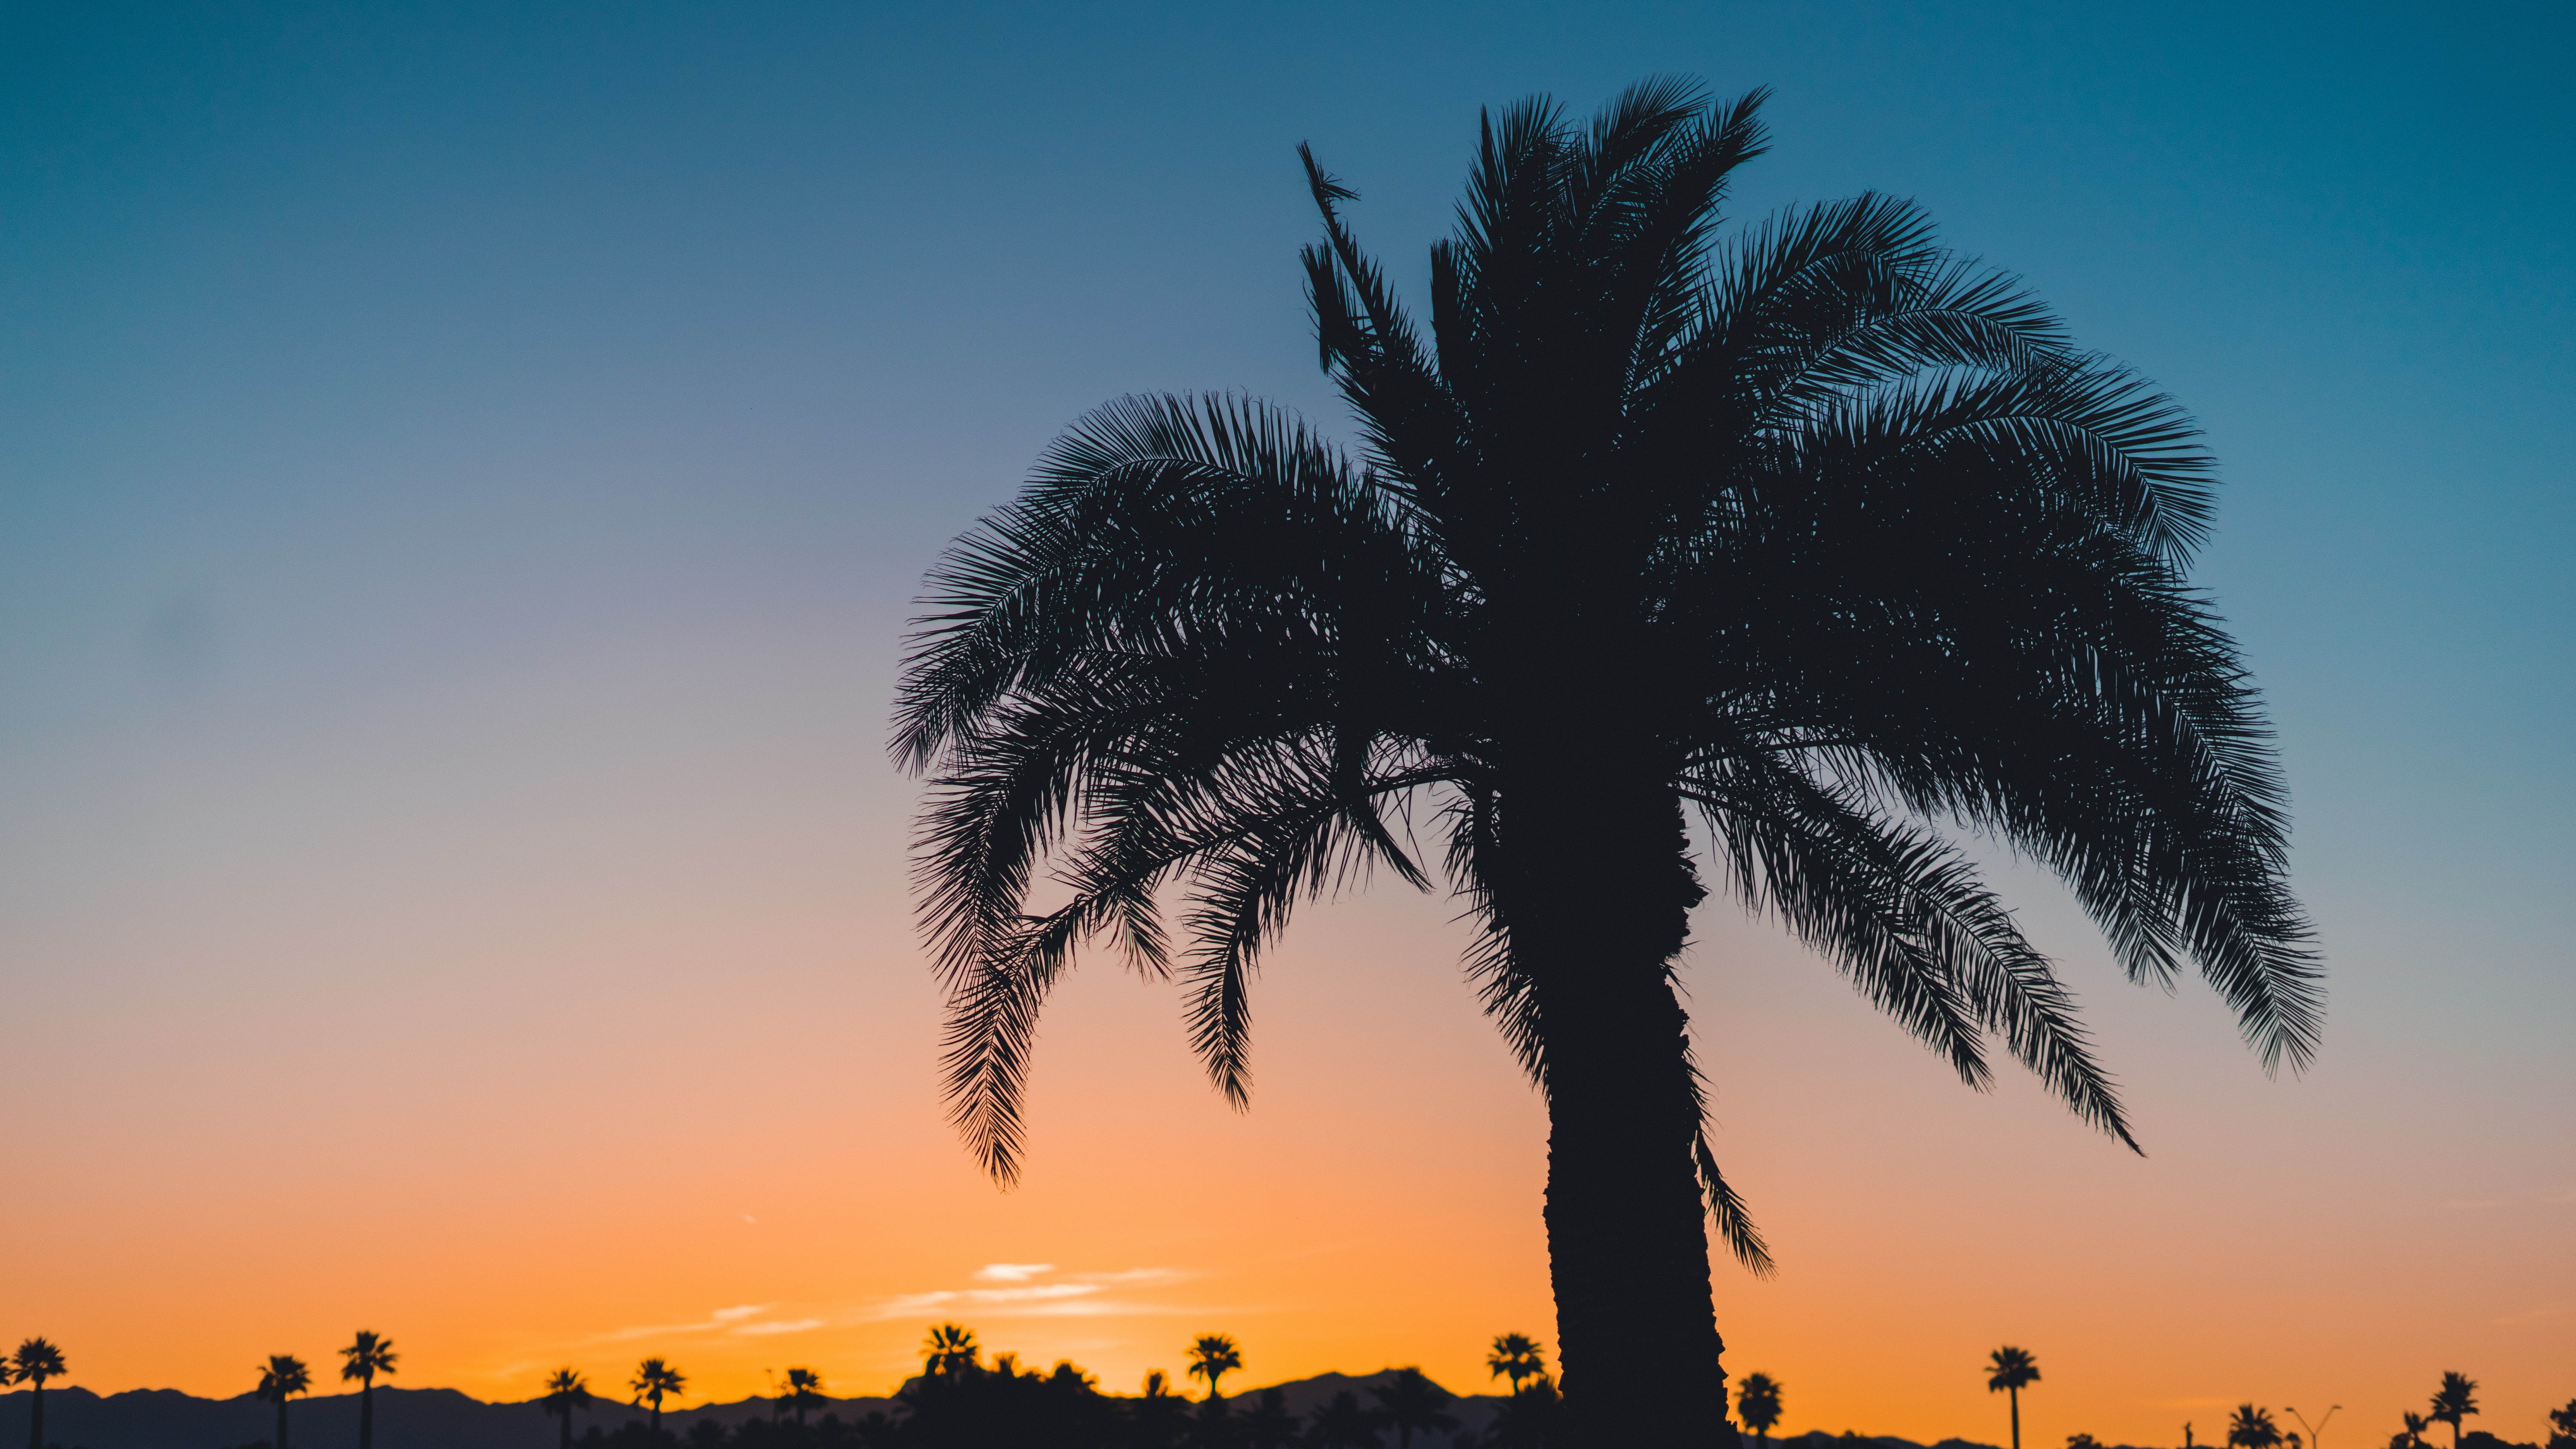 127928 download wallpaper Nature, Palm, Sunset, Leaves, Branches, Sky, Tropics screensavers and pictures for free